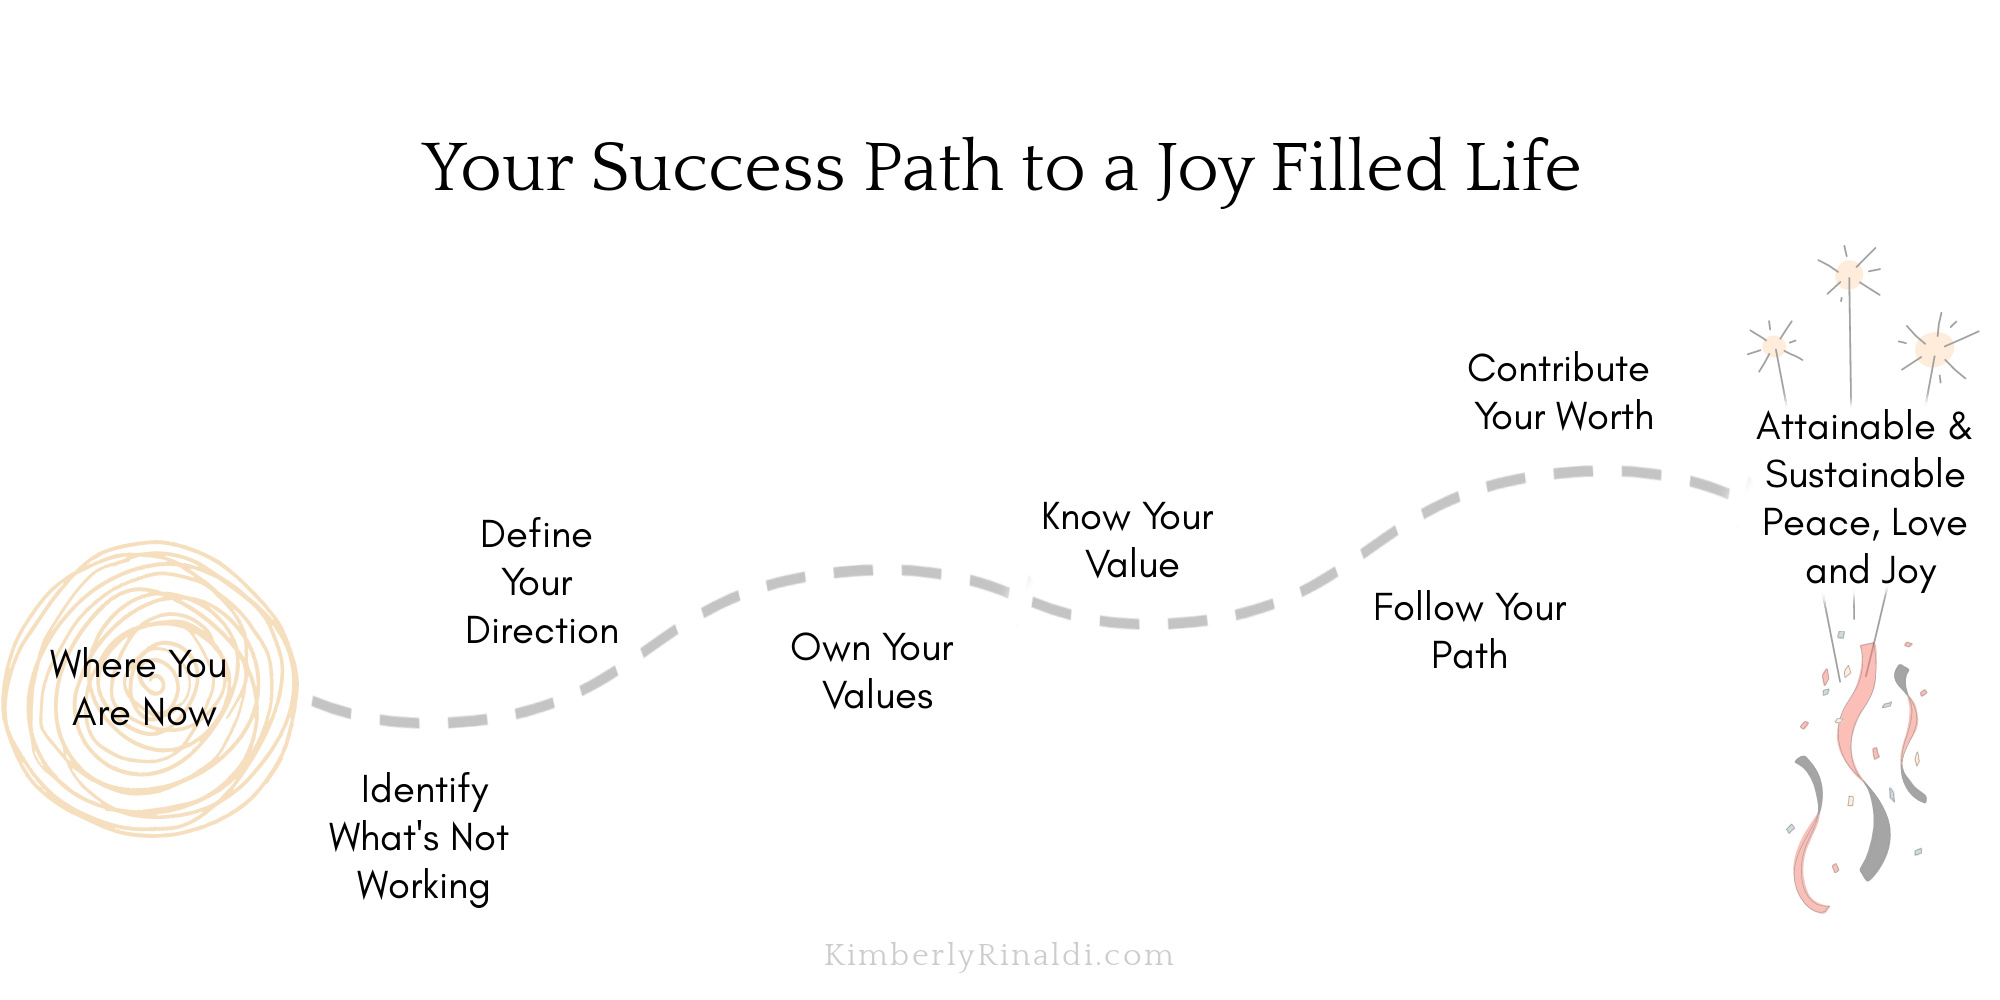 14 Day Guided Journey to a Joy Filled Life Success Path